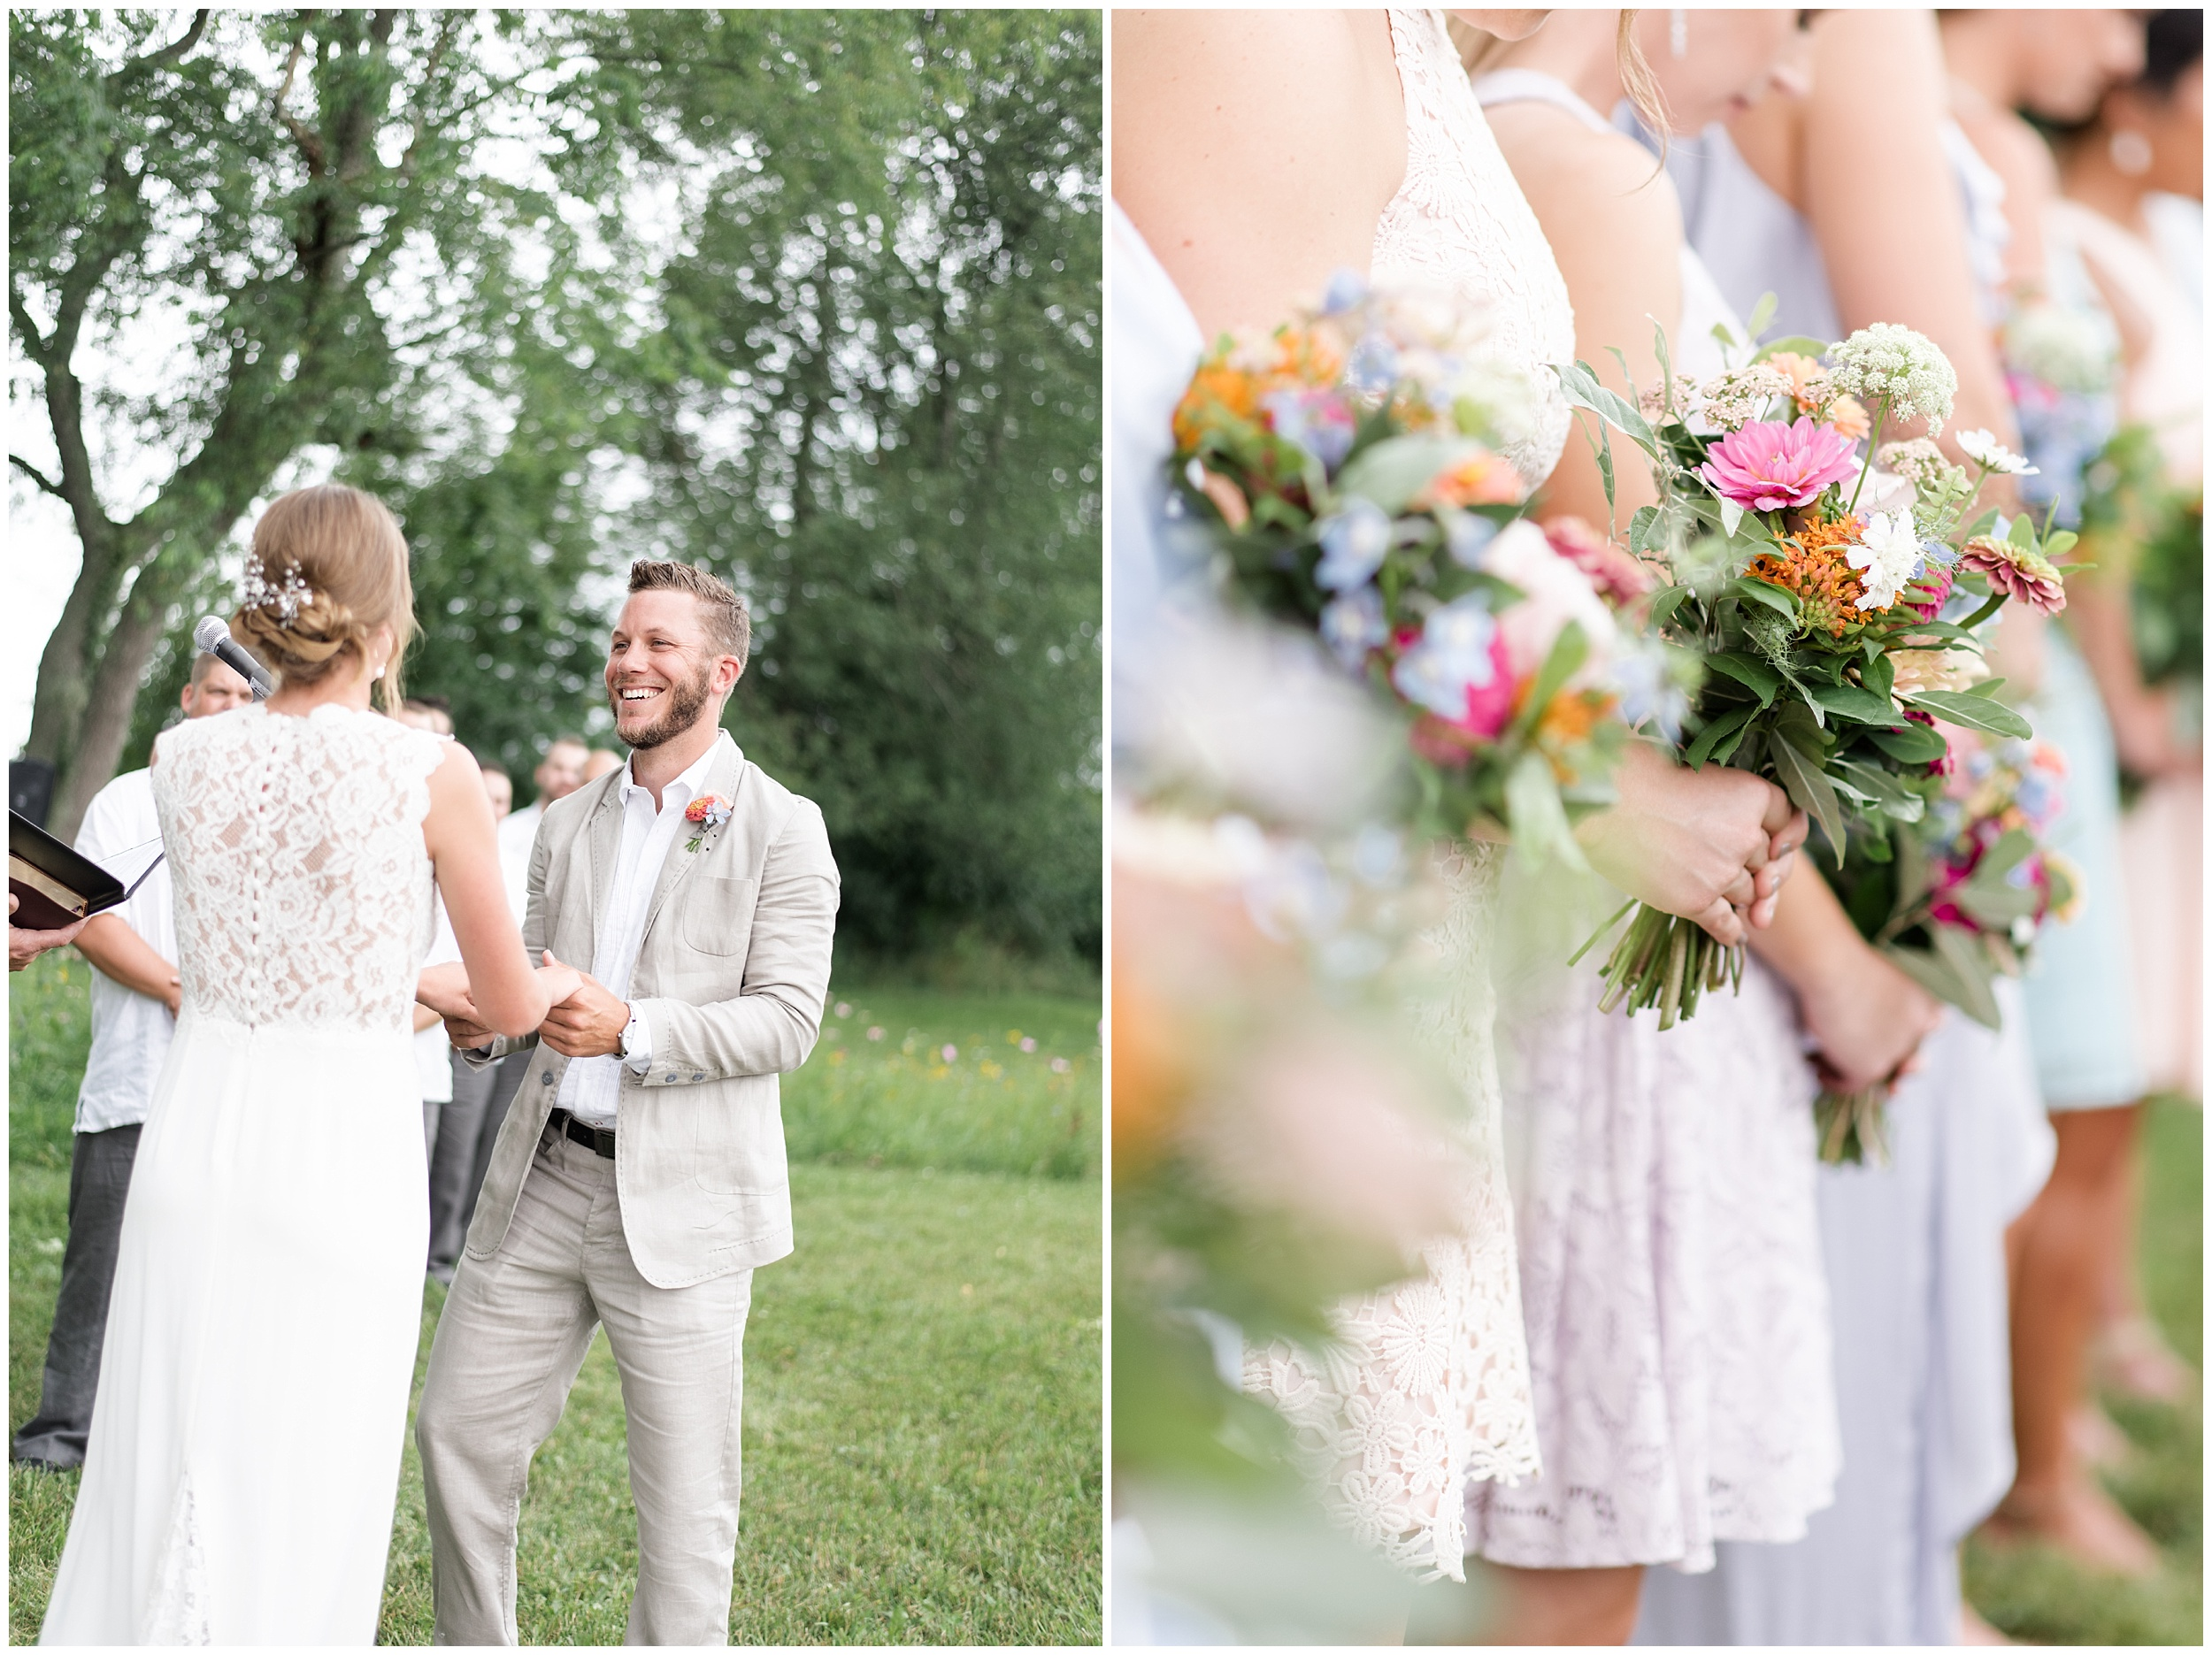 Whimsical-Ethereal-July-Kalamazoo-Wedding-Bright-Airy-Documentary-Milwaukee-Photographer_0033.jpg